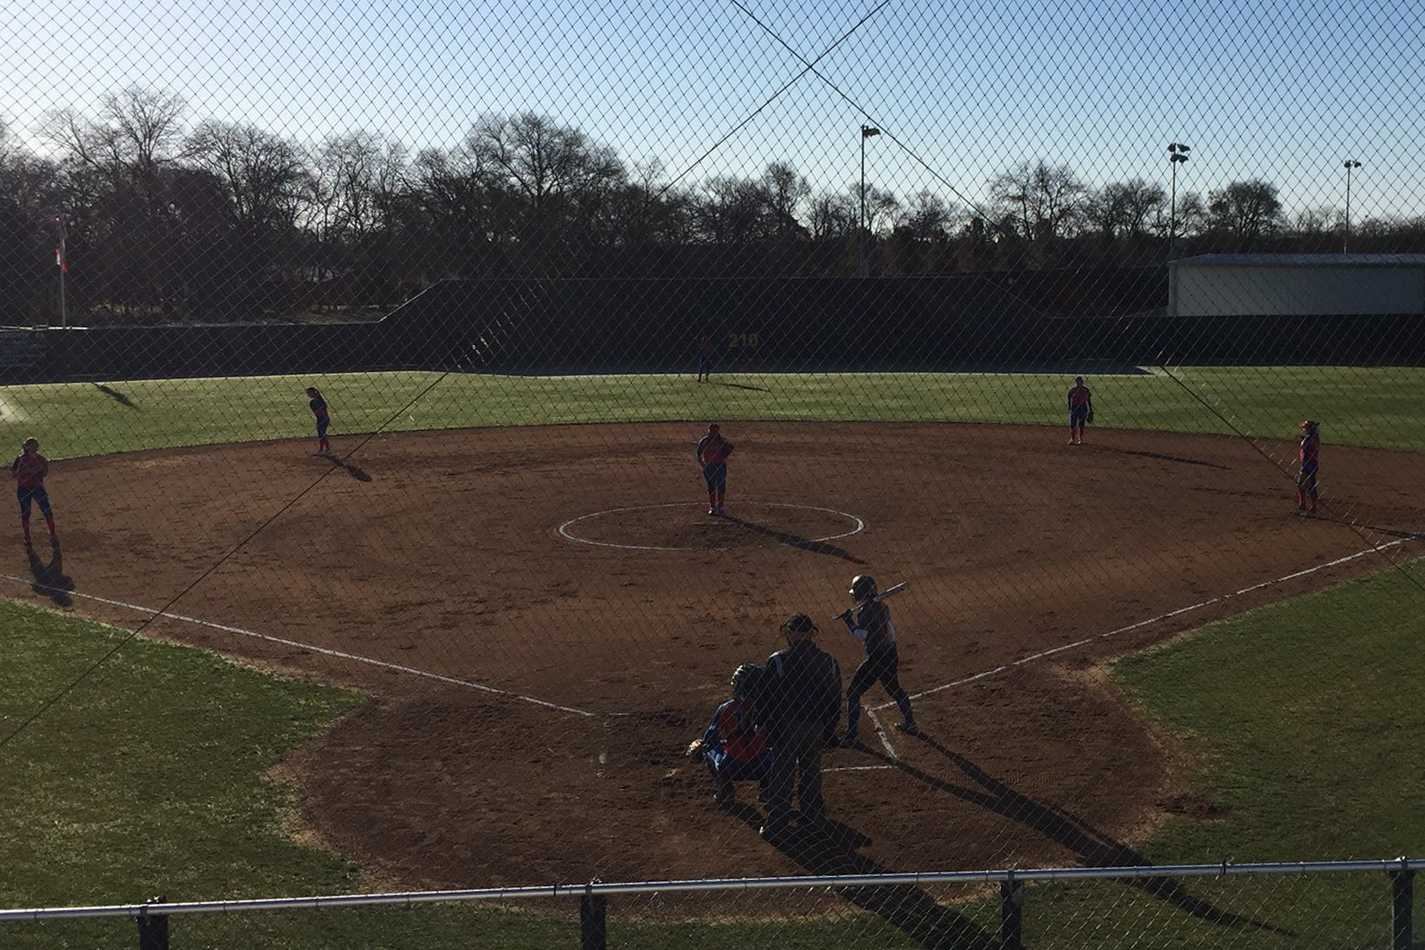 After a tournament in College Station, the varsity softball team will be competing in a tournament on Friday.